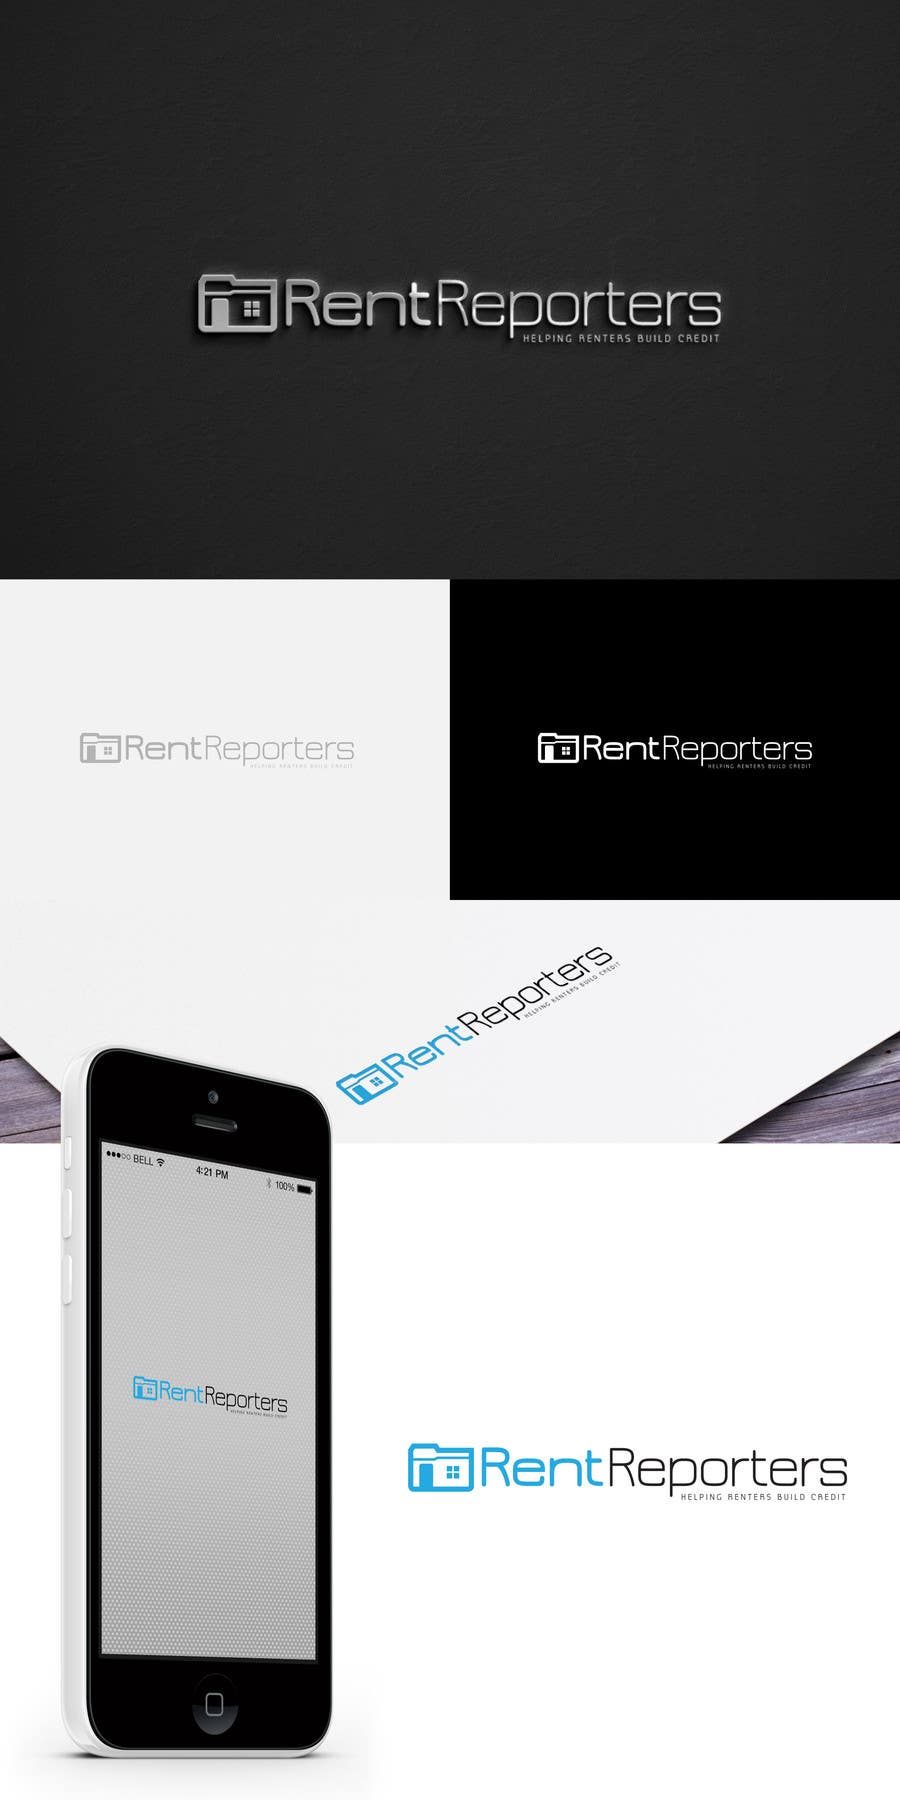 #51 for Design a Logo for RentReporters by Blissikins